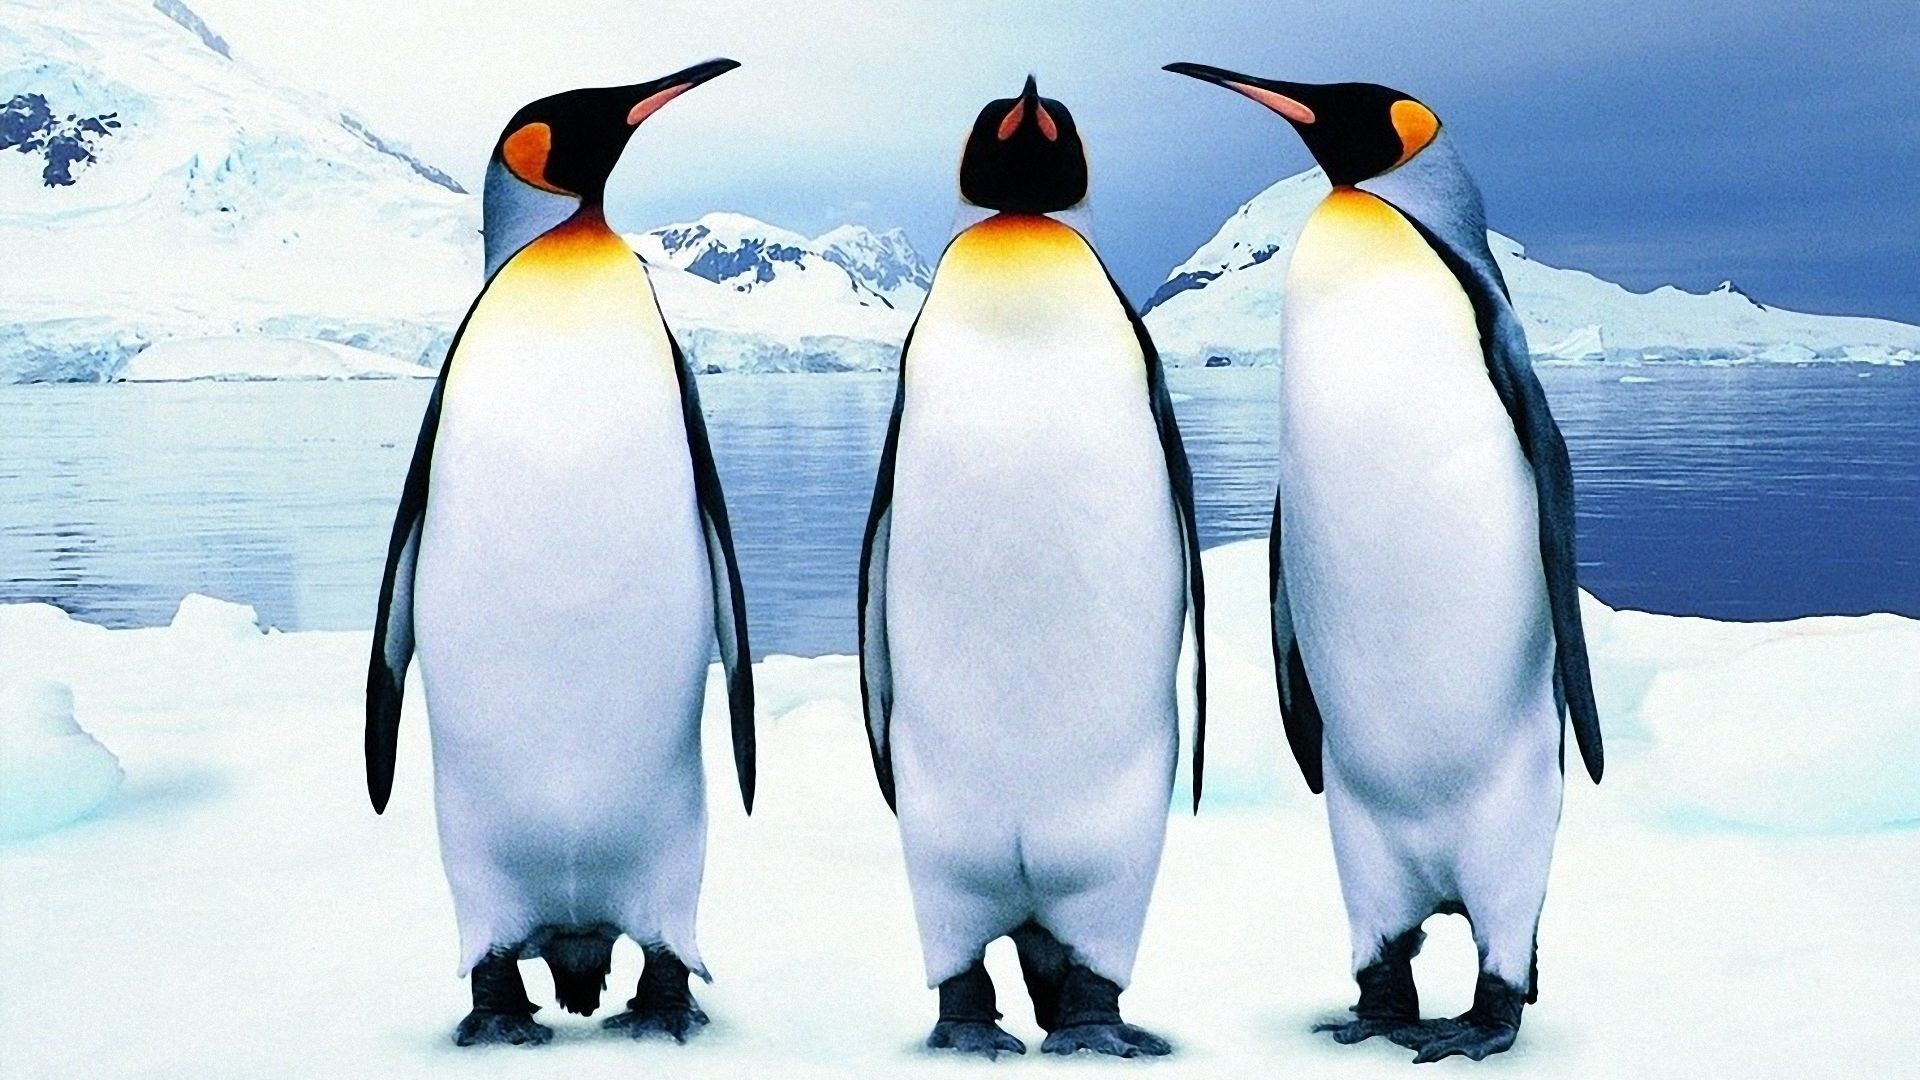 Three Penguin Wallpapers,Penguin Wallpapers Wallpaper Res: Added on ,  Tagged : at Wallpapers Website